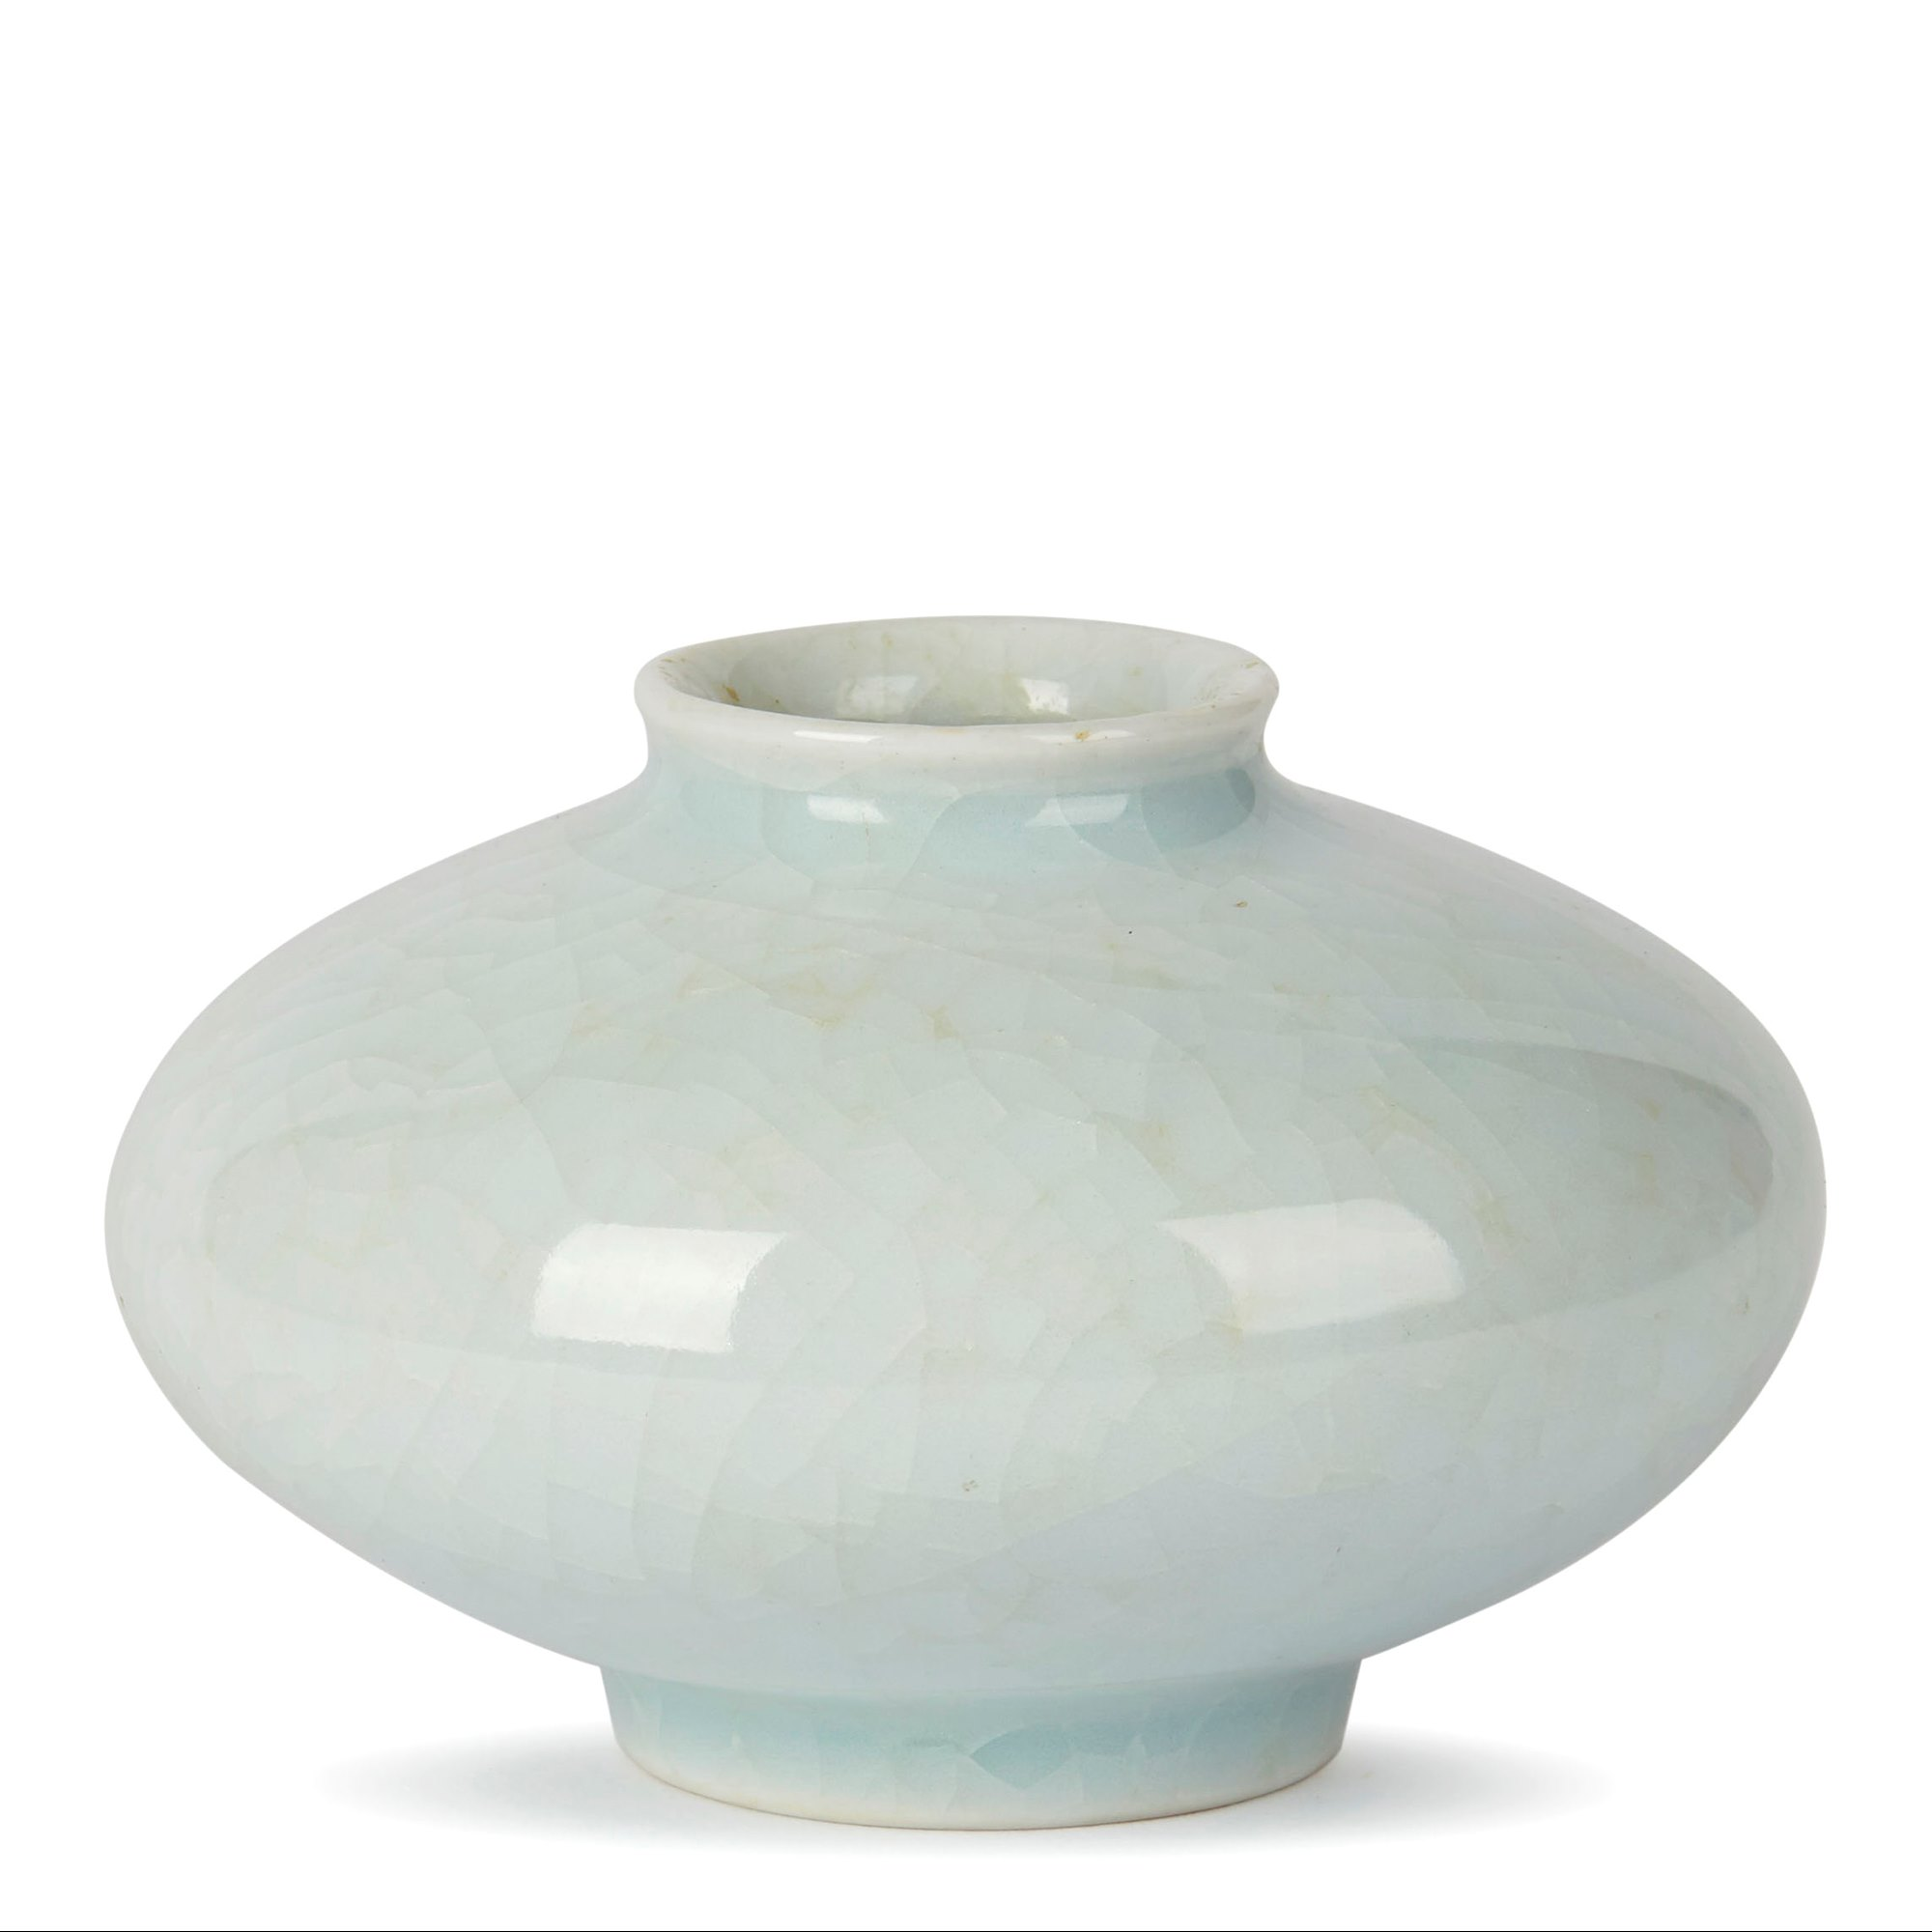 WILLIAM MEHORNAY STUDIO POTTERY ICE BLUE WHITE VASE 1980 Made in 1983